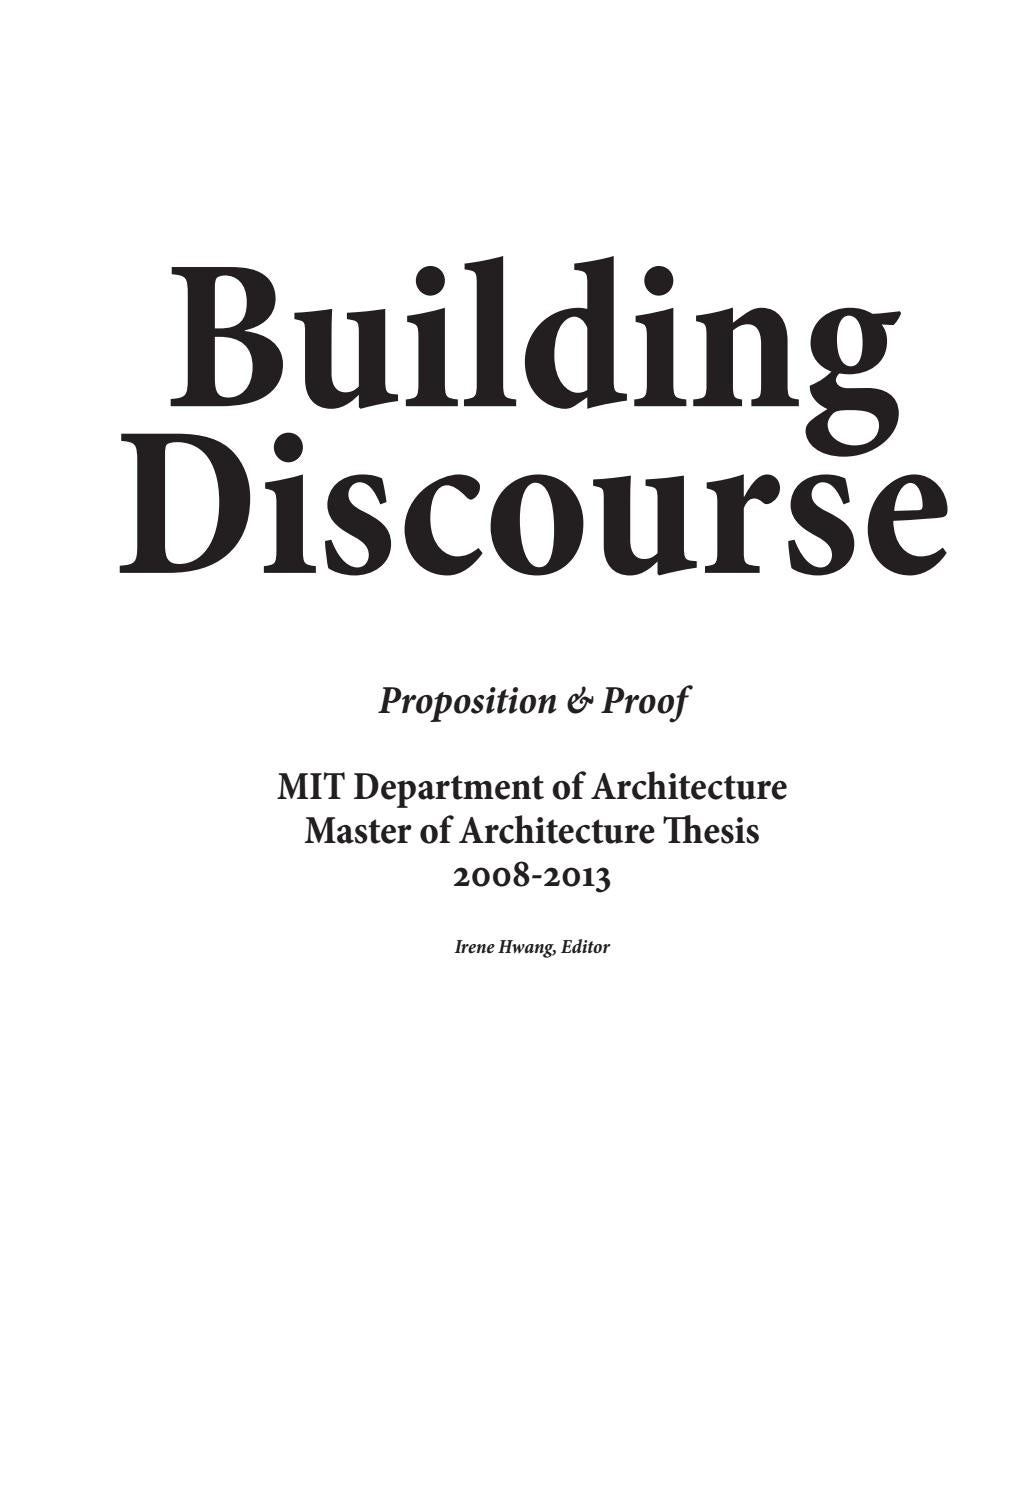 Building Discourse March Thesis Projects 2008 2013 By Mit Monster Bash Cartridge Use With Circuit Electronic Cutting Machine Architecture Issuu